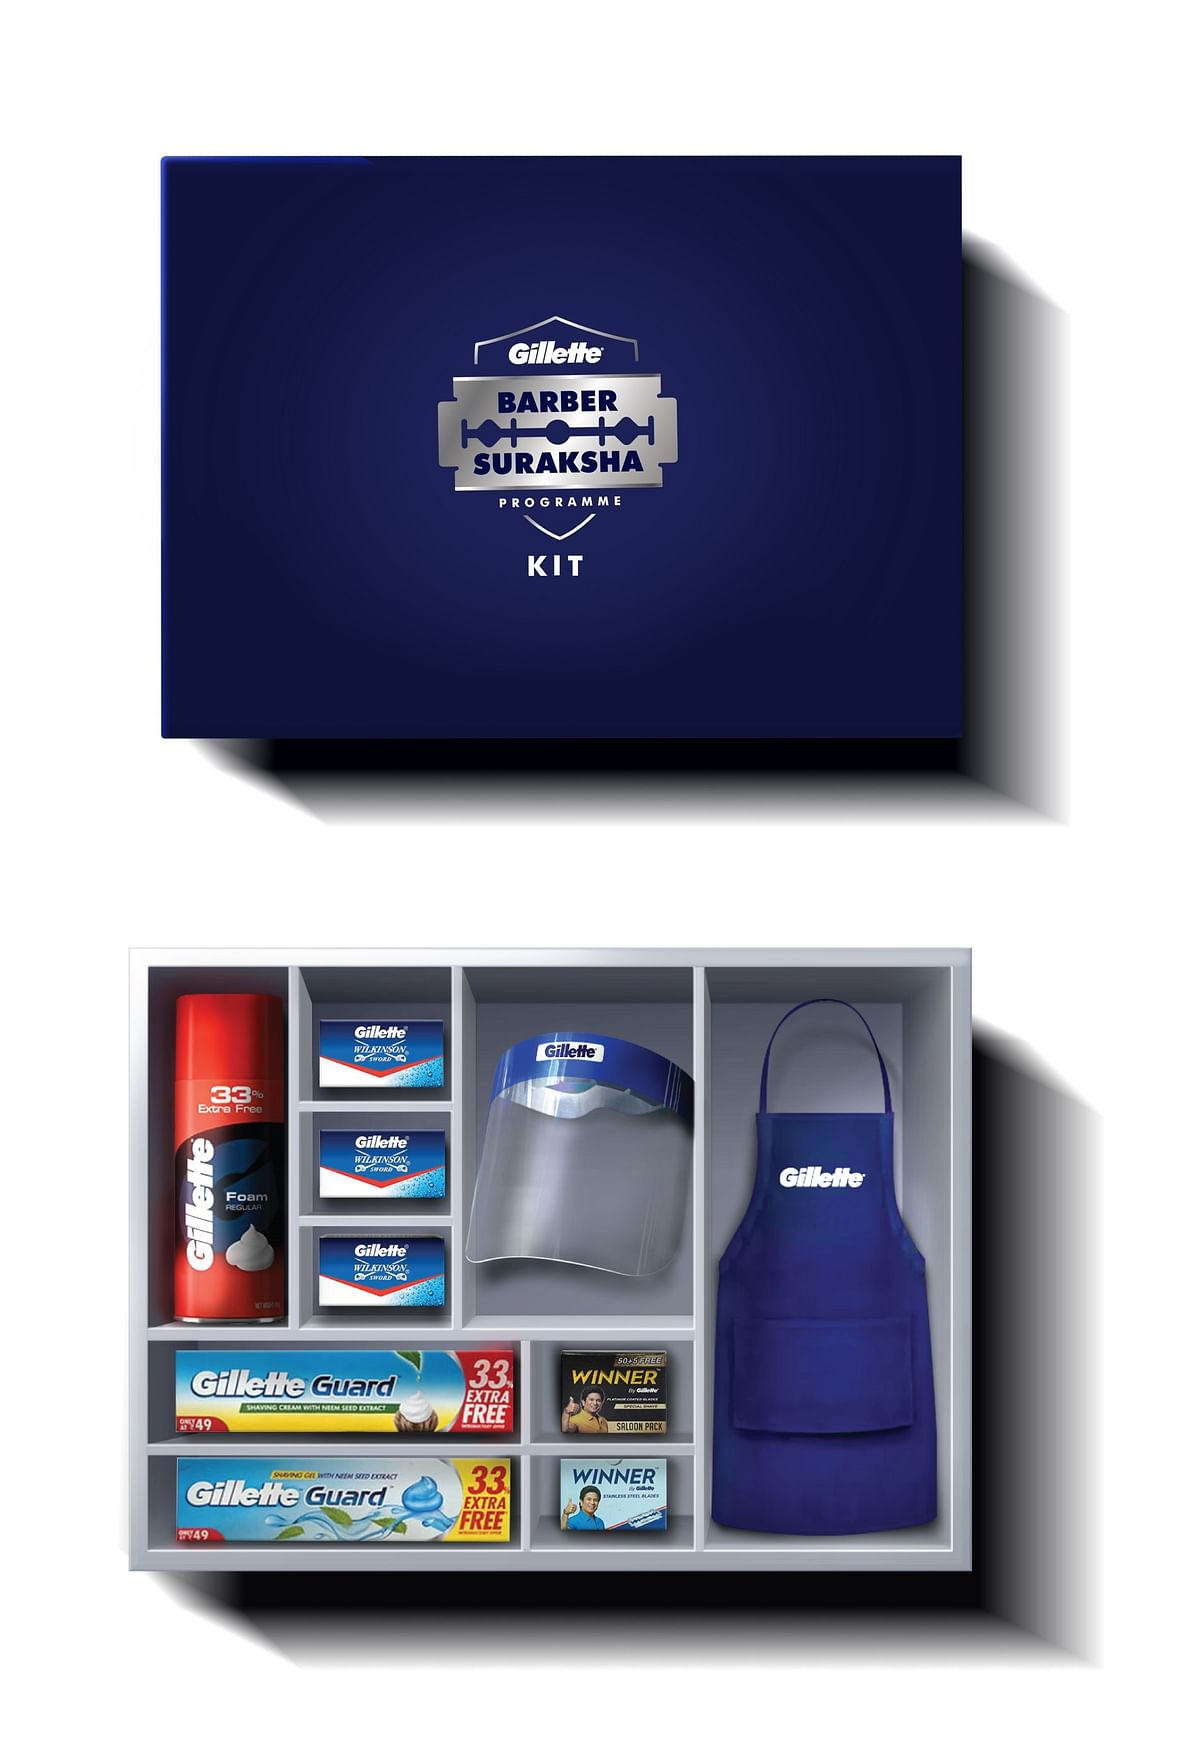 This is what a Gillette Suraksha kit looks like.